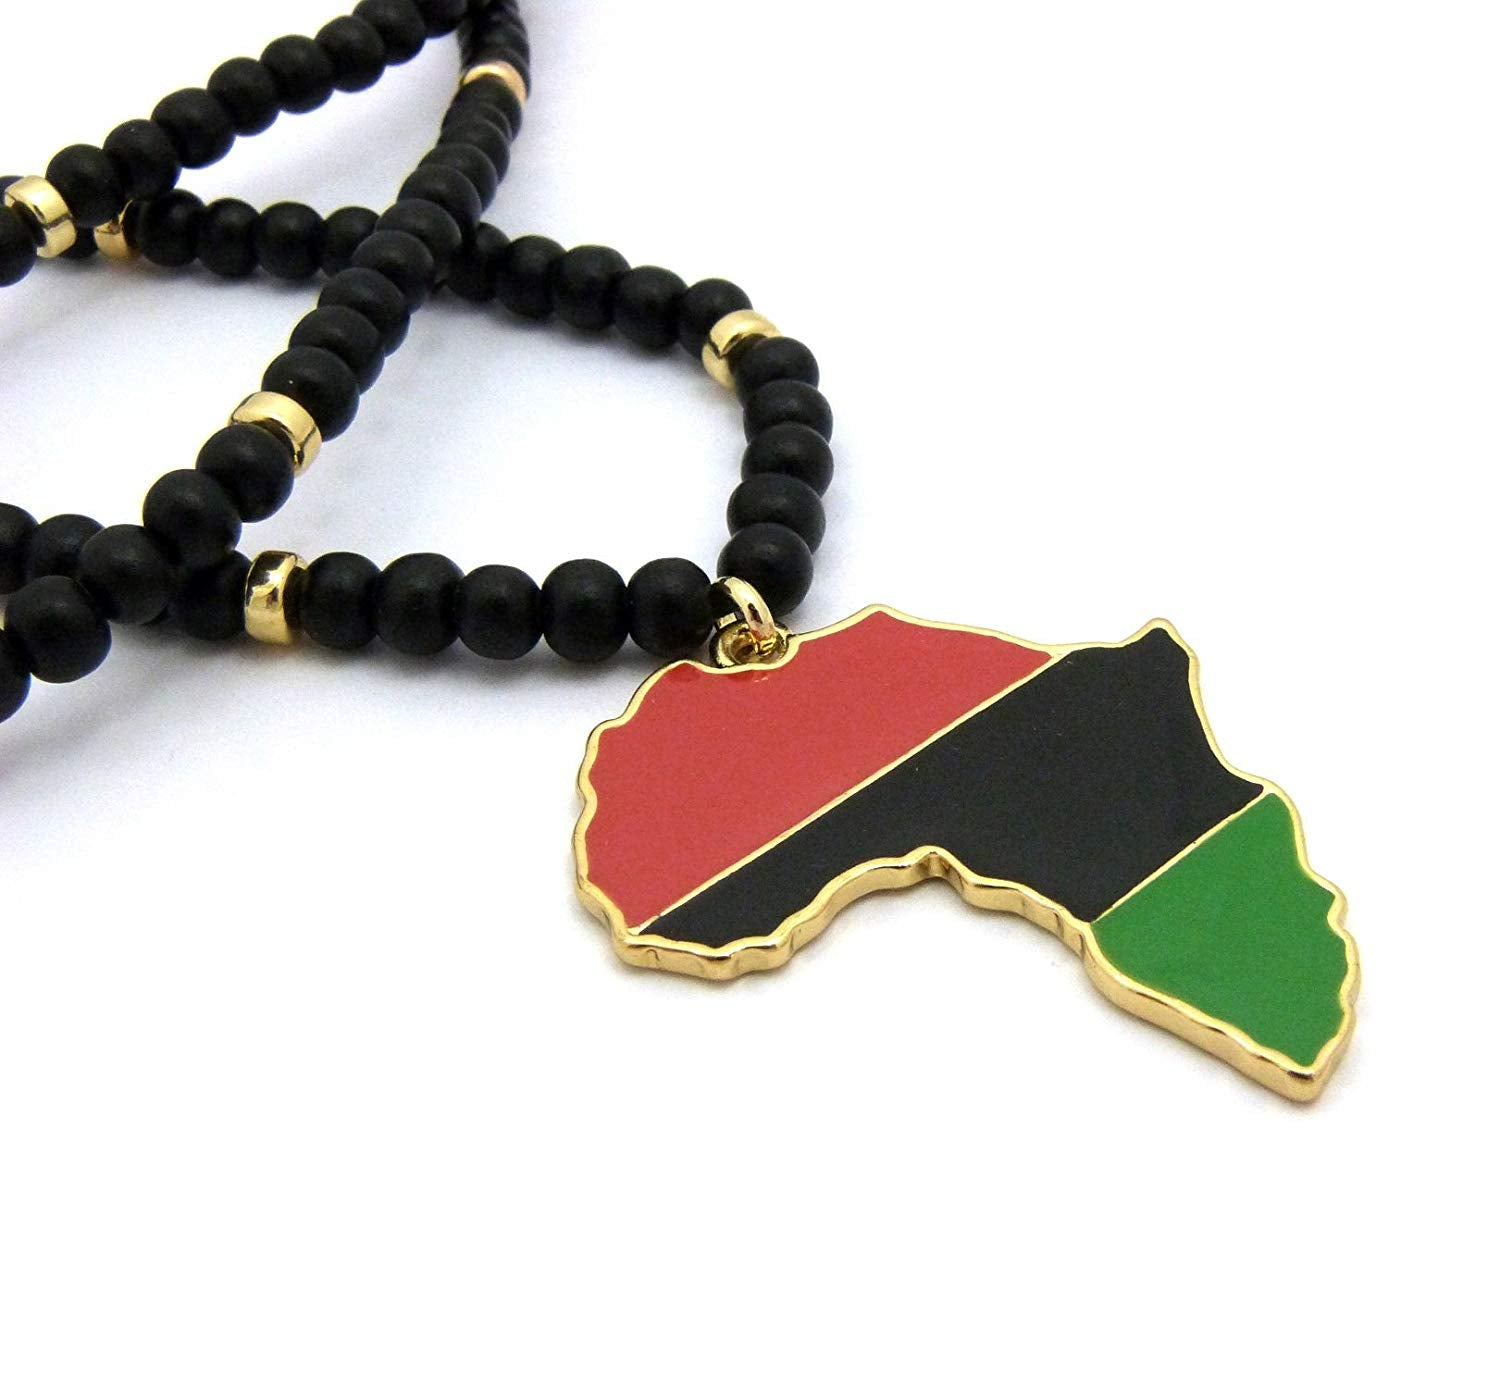 "Fashion 21 Pan African Colored Africa Map Pendant 6mm 30"" Wooden Bead Necklace in Gold, Silver Tone"